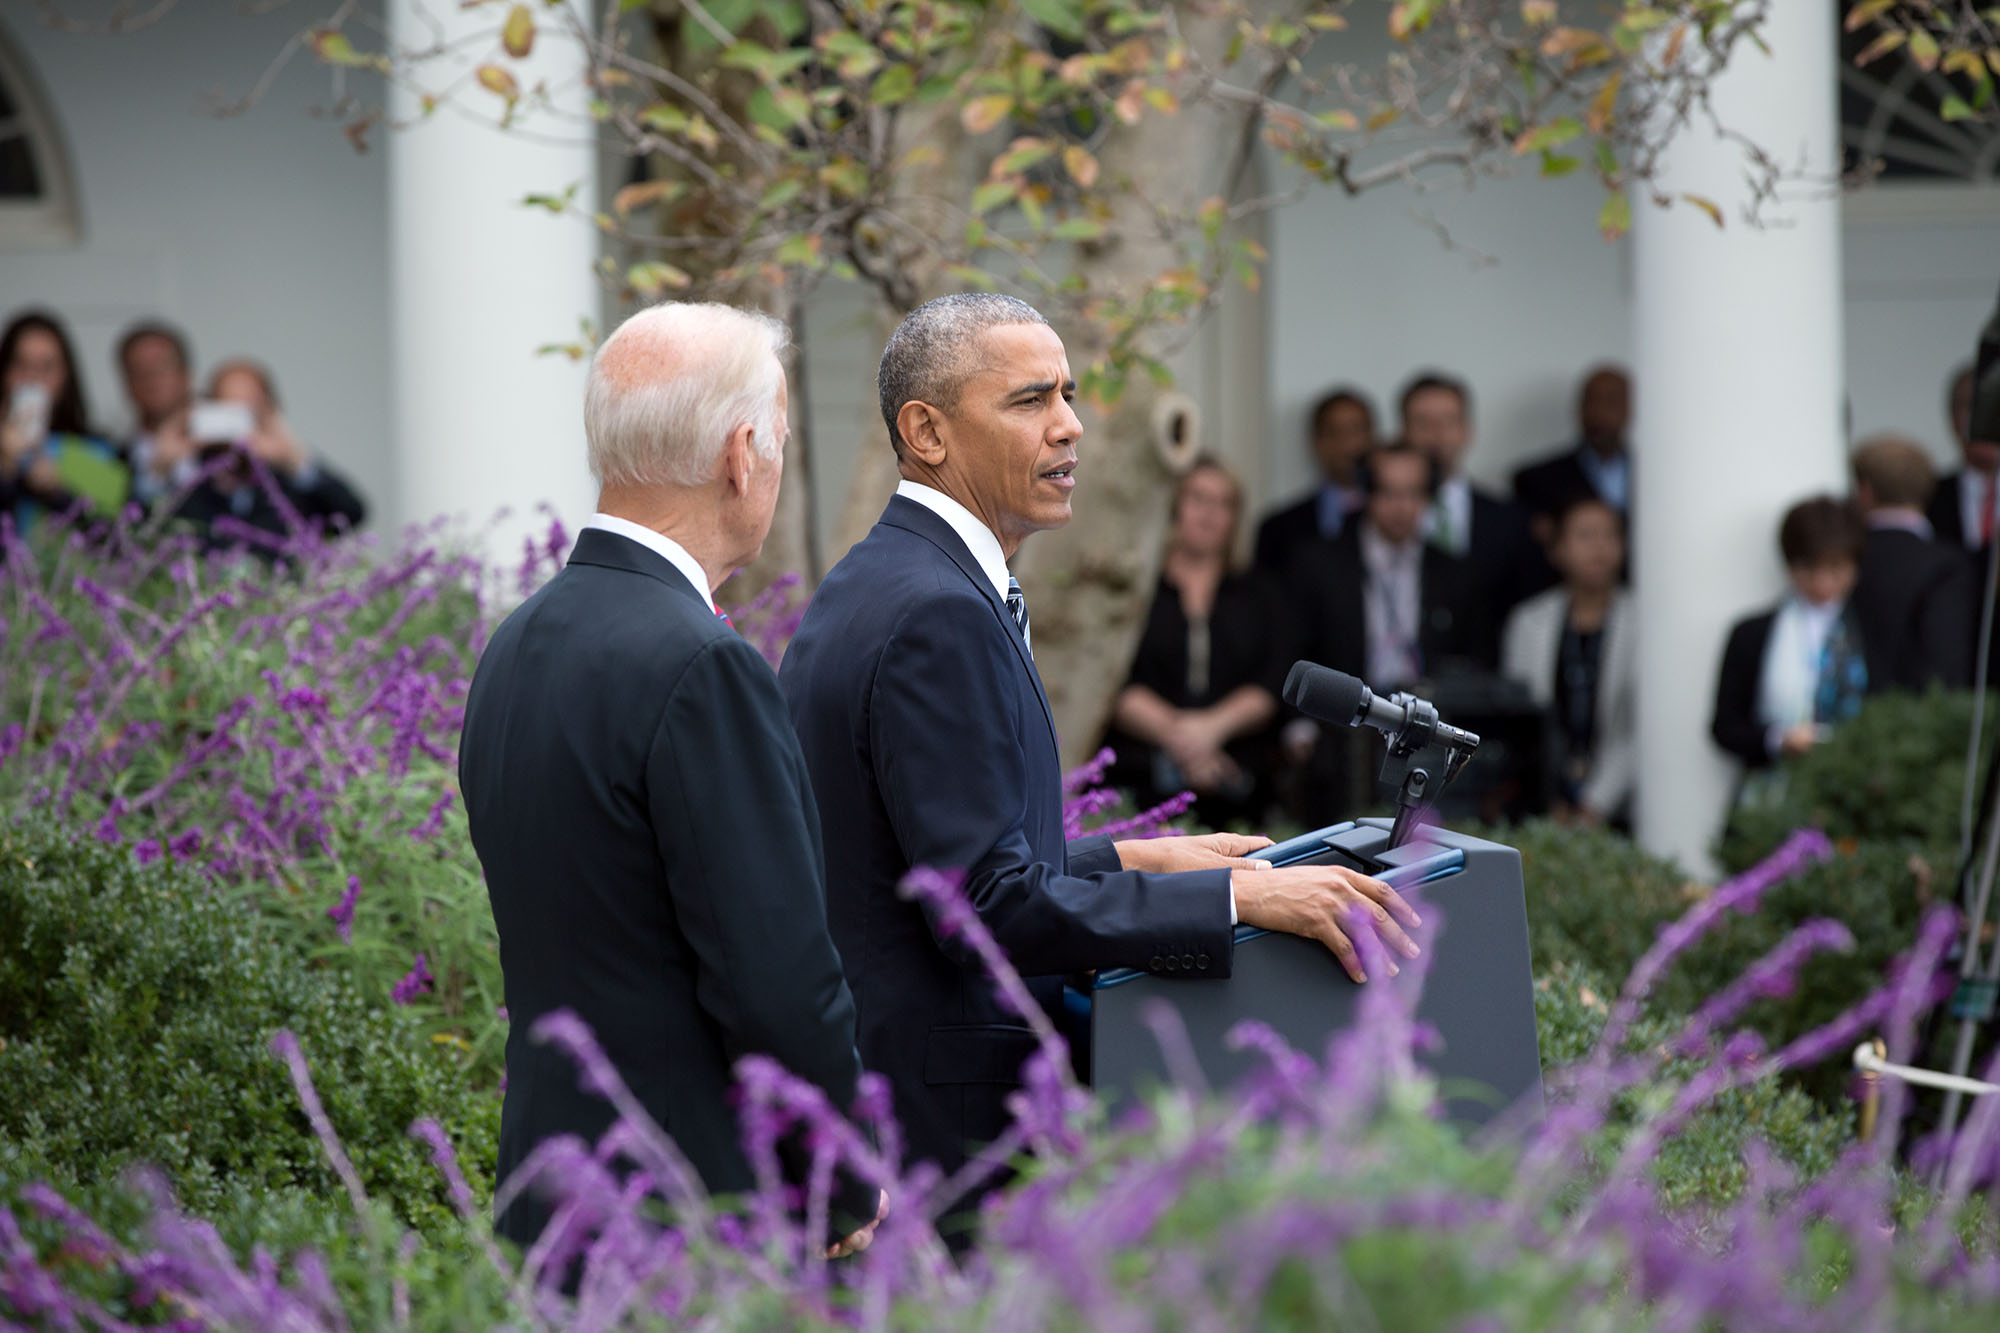 President Barack Obama, with Vice President Joe Biden, delivers a statement regarding the U.S. election results, in the Rose Garden of the White House, Nov. 9, 2016. (Official White House Photo by Pete Souza)